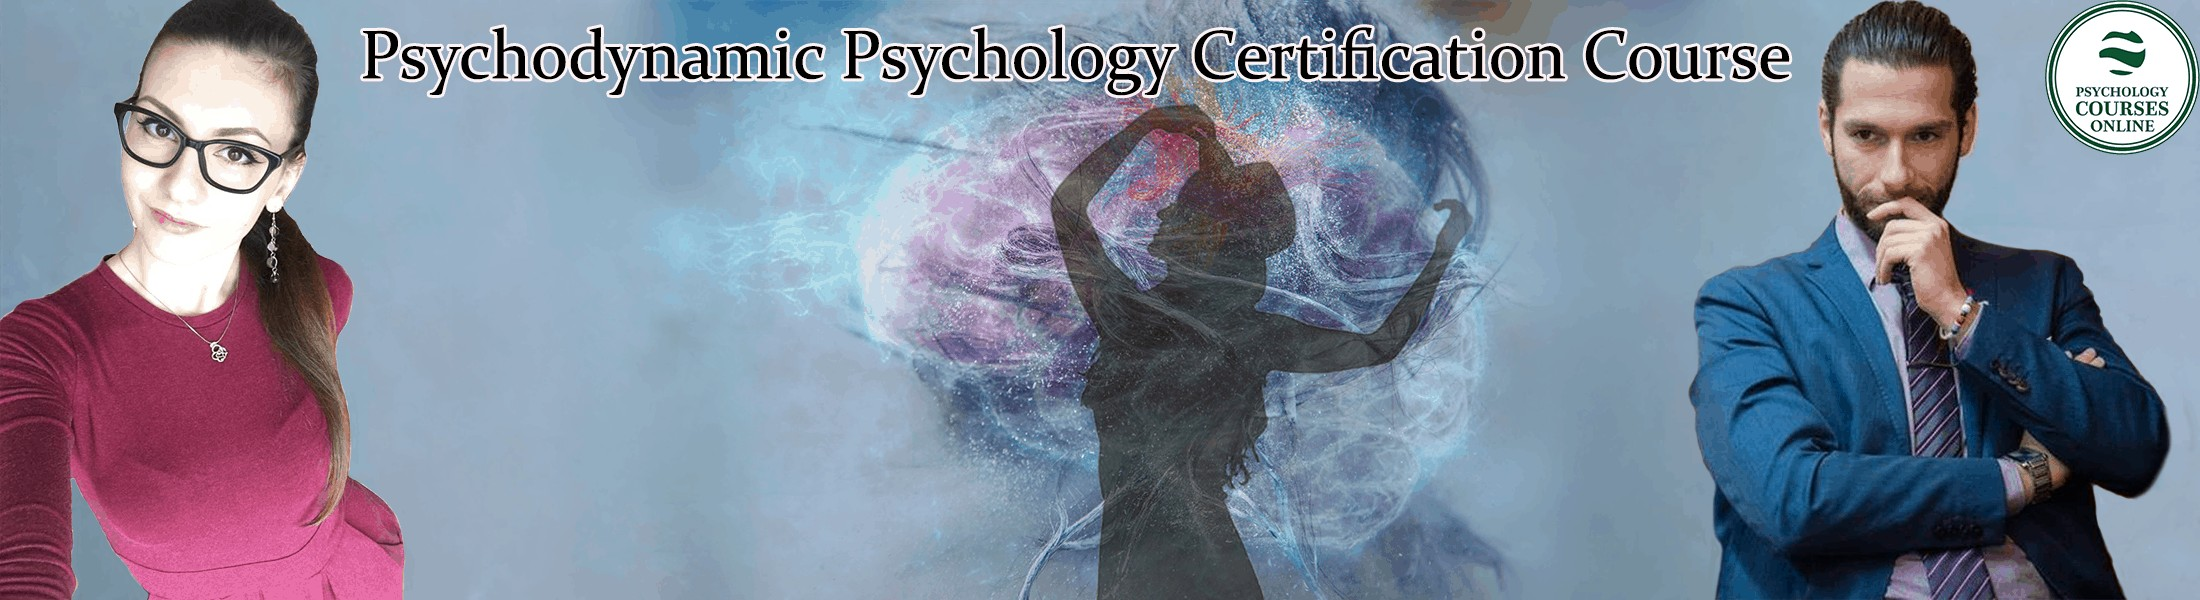 psychodynamic psychology Psychology Online Courses